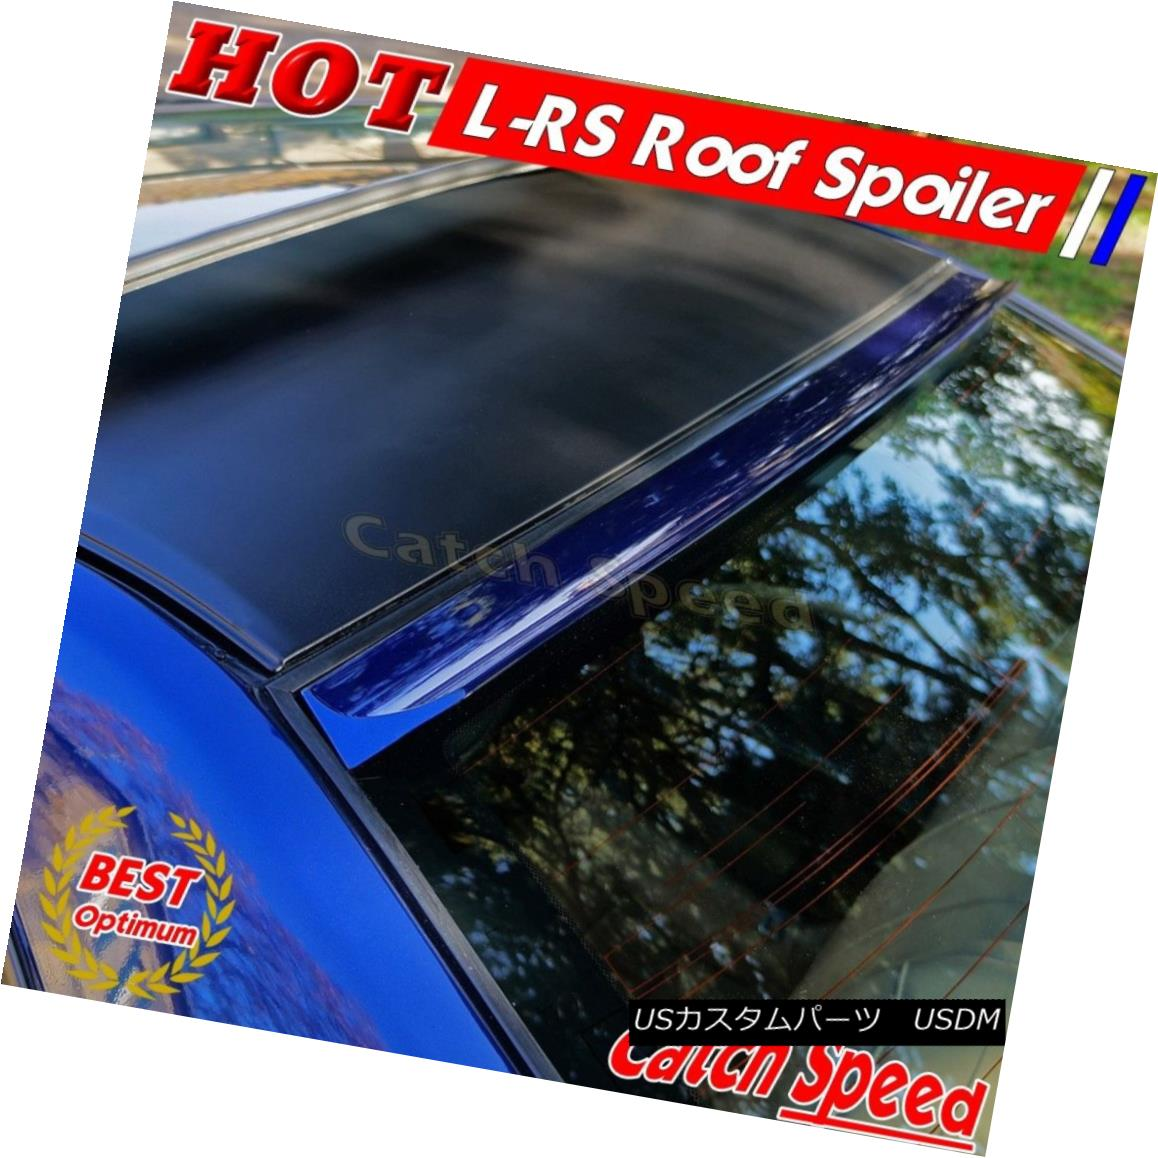 エアロパーツ Painted LRS Type Rear Roof Spoiler For KIA Forte LPI Hybrid Sedan 2009-2013 ? KIA Forte LPI Hybrid Sedan 2009-2013のために塗装されたLRSタイプのリアルーフスポイラー?